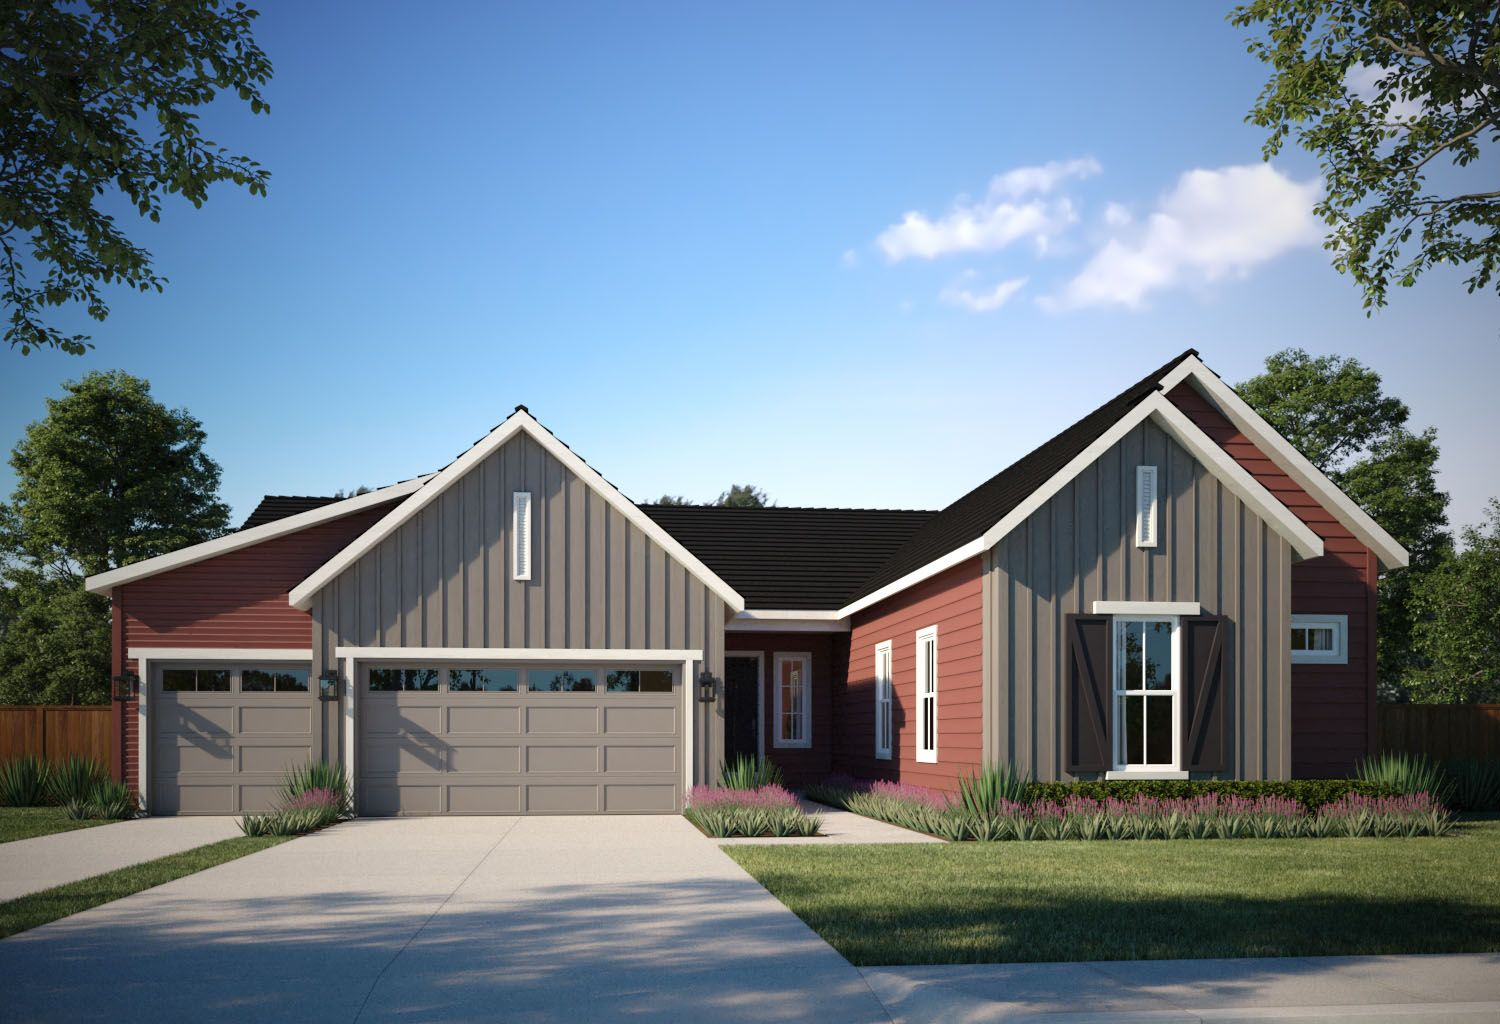 Residence 5801 A | More Exterior Choices Coming Soon